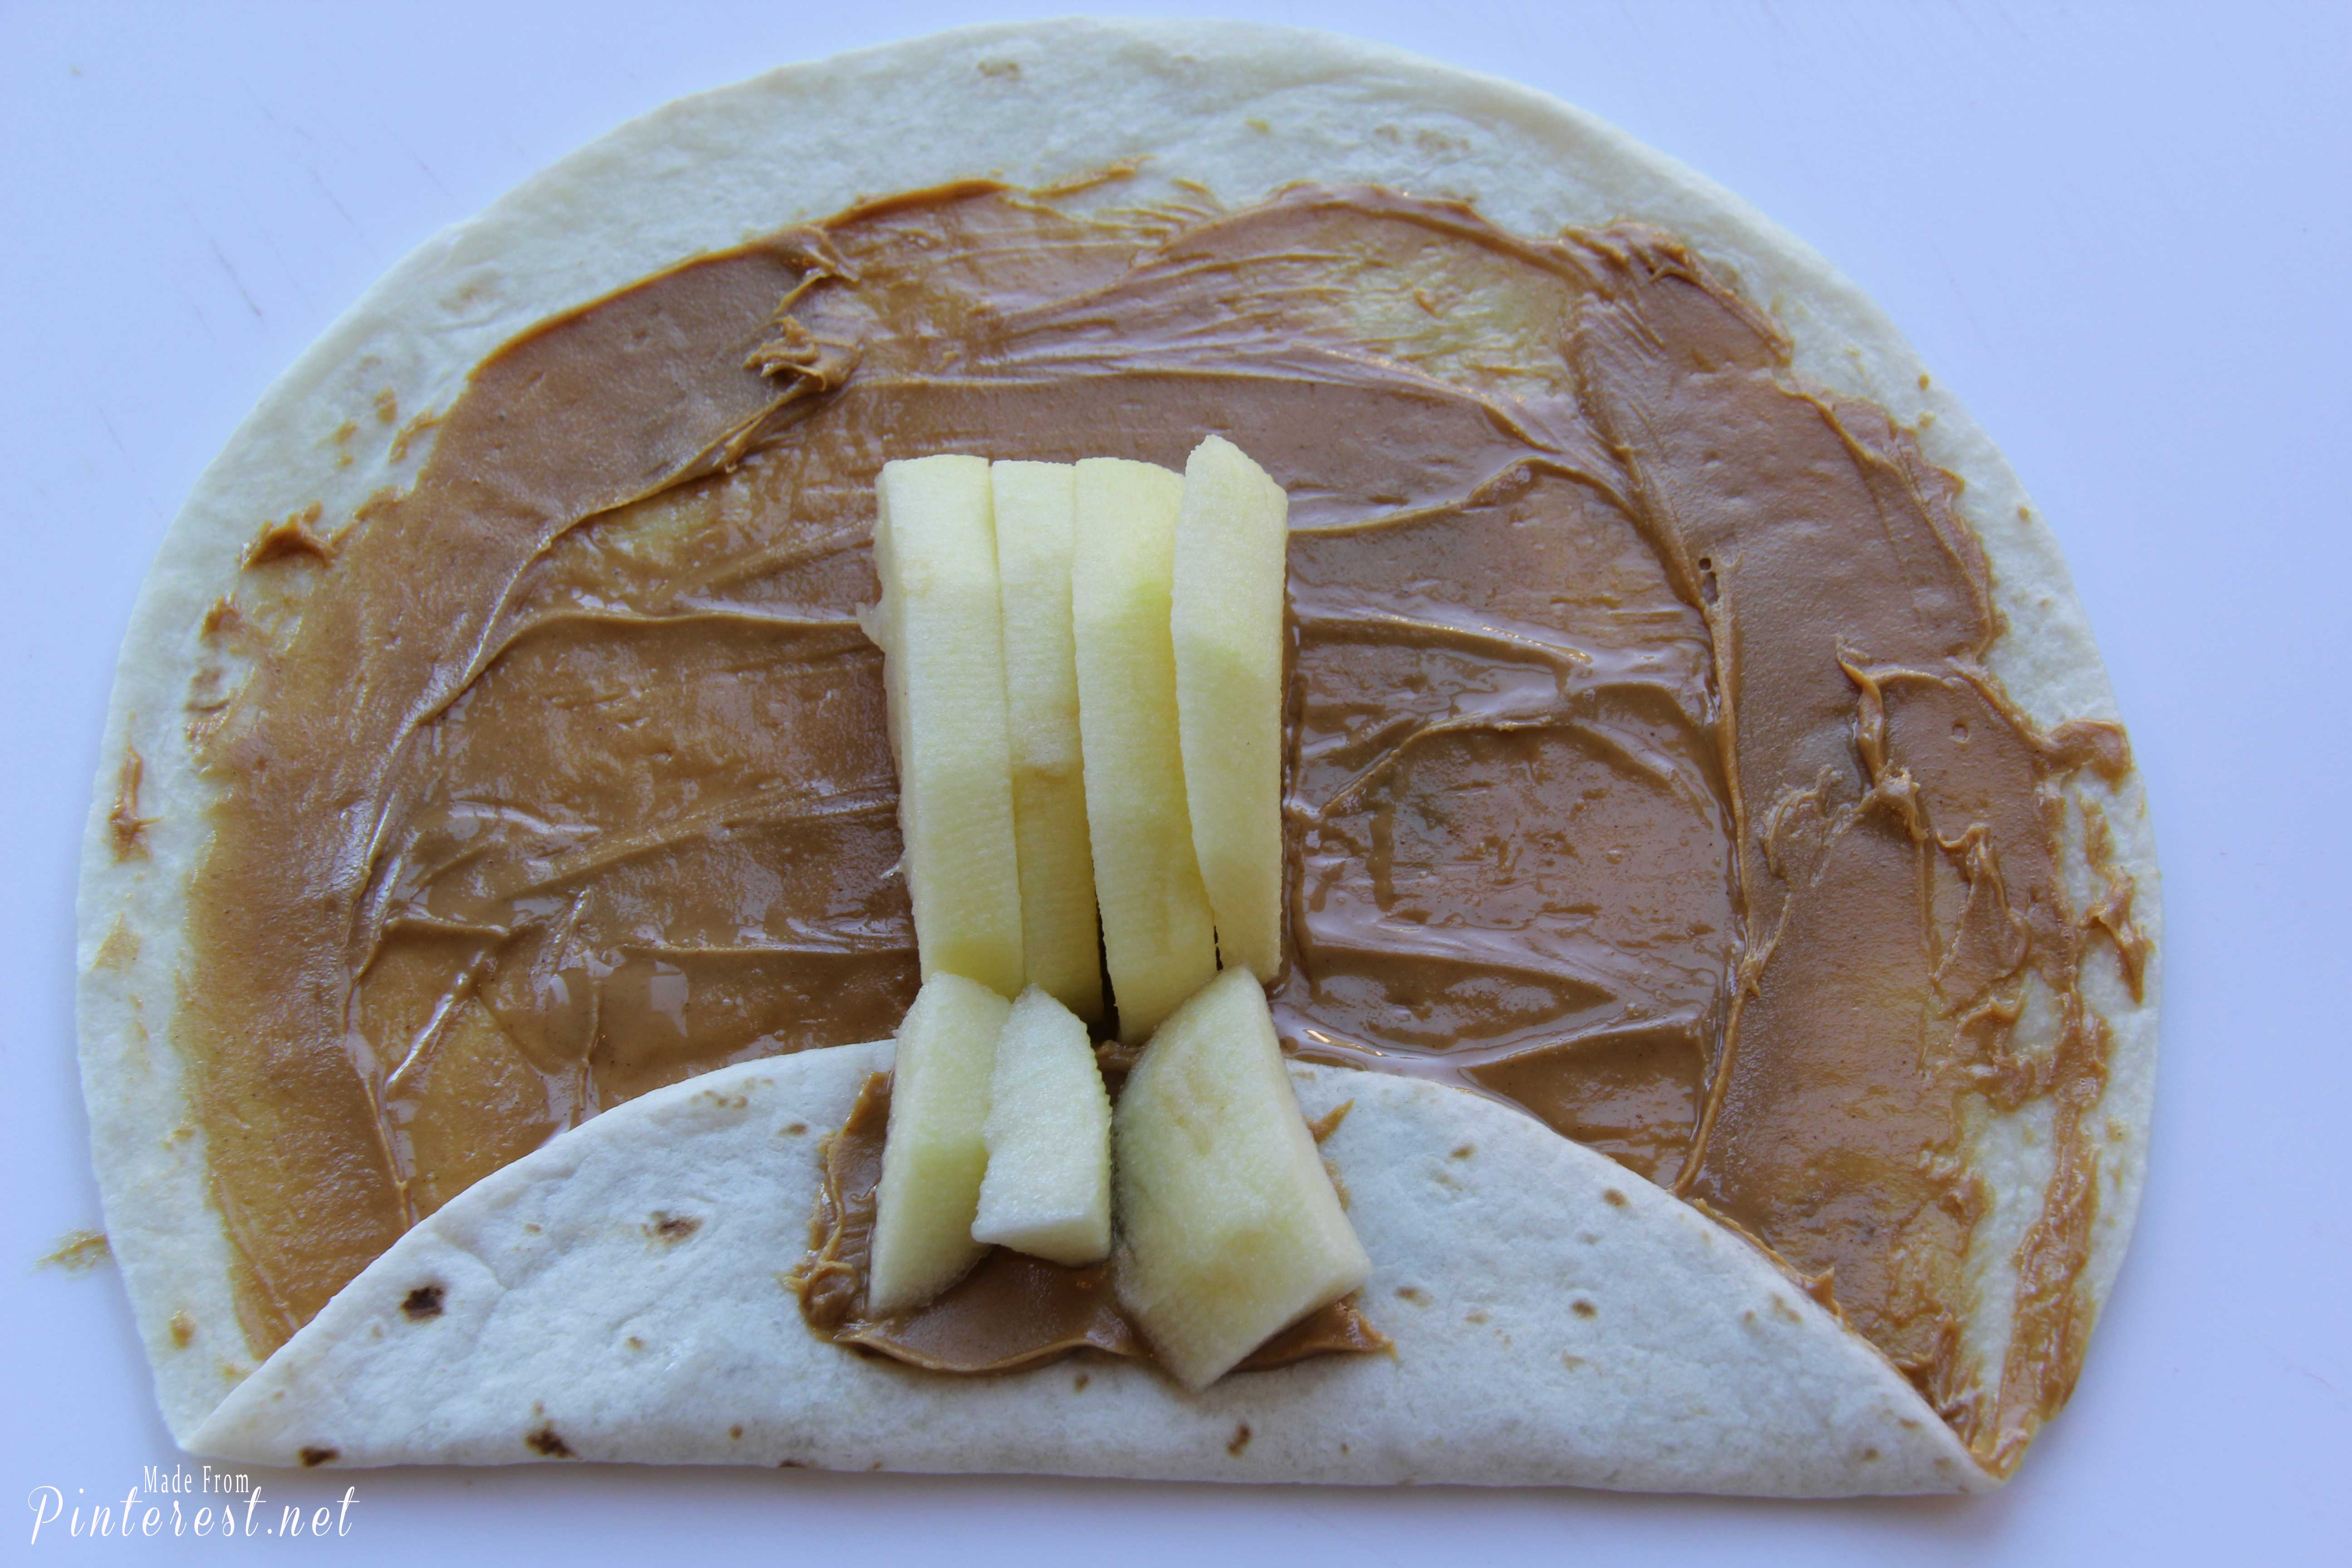 Slumber Party Snacks - Hard to believe that something this darling can also be healthy. The tortillas have peanut butter and apples for the filling! Your kids will LOVE them! #Snacks #Appetizers #Party #Recipe